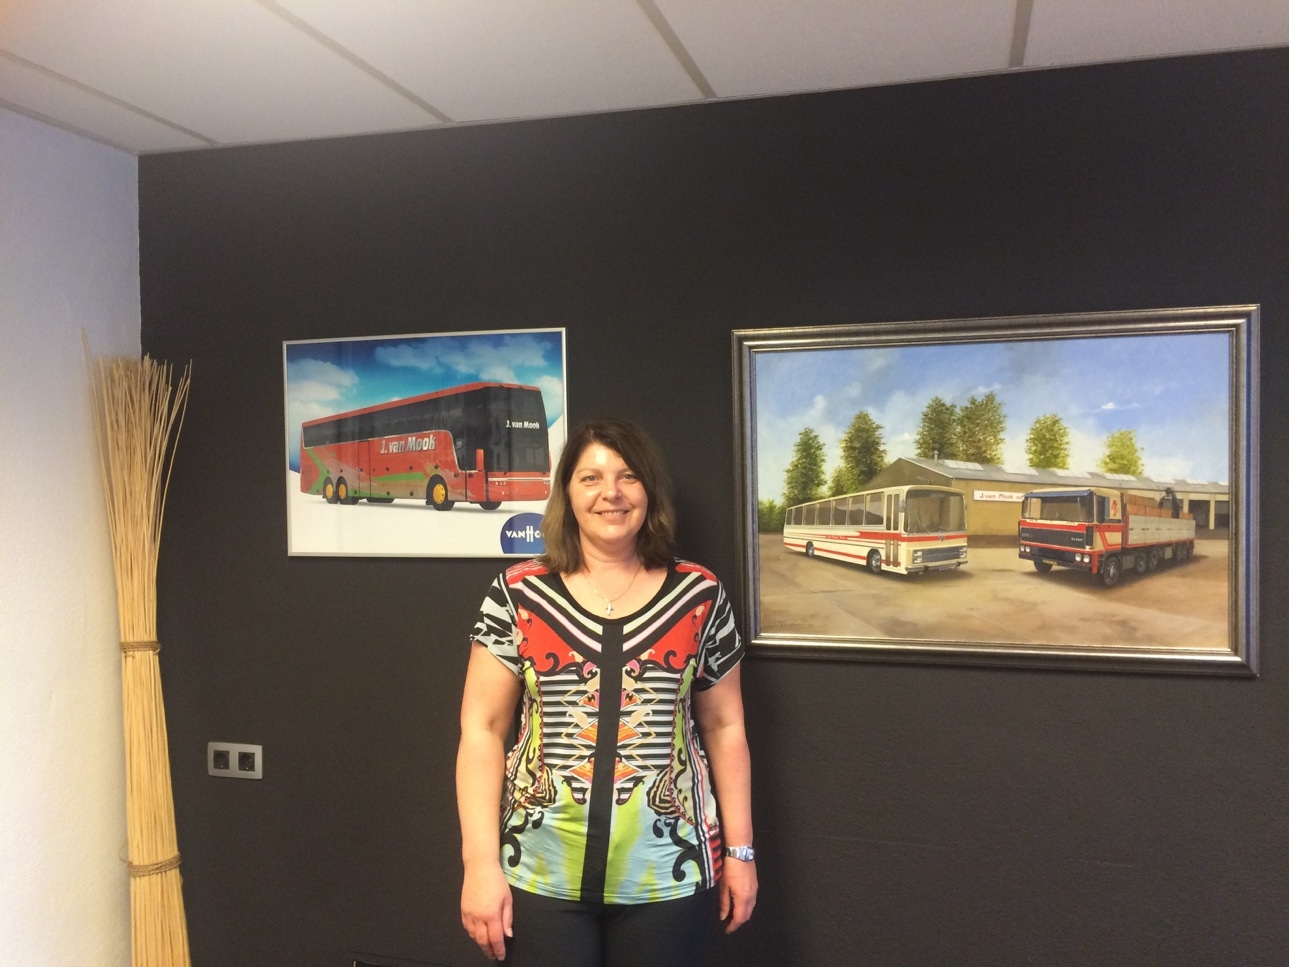 Coach and bus hire operator mrs. Astrid de Jong from Van Mook